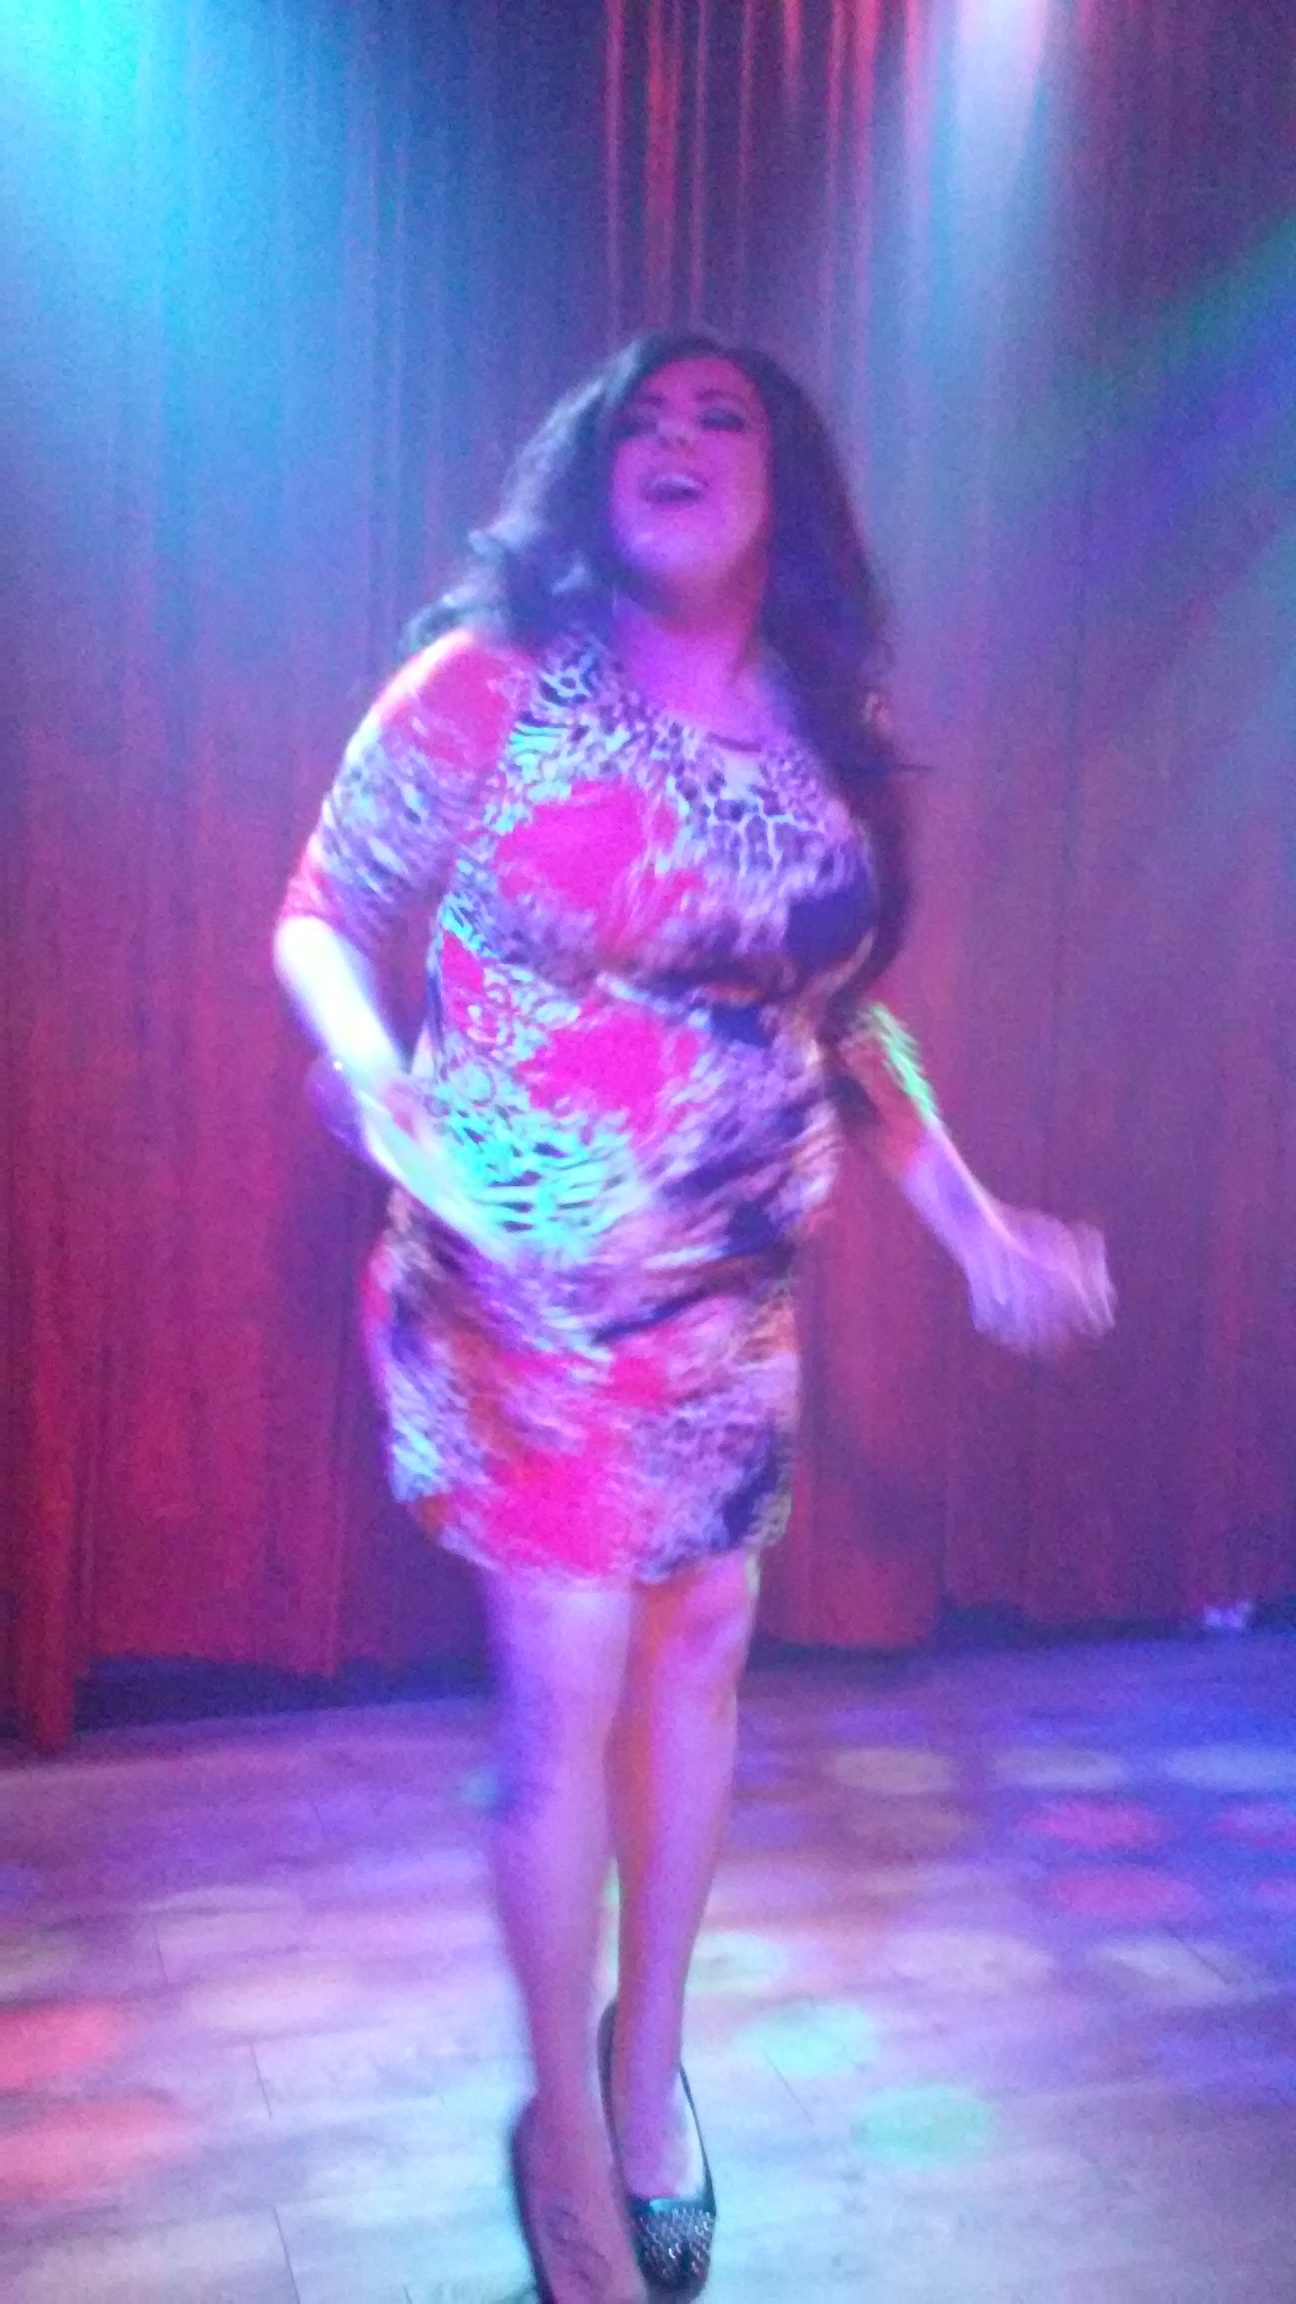 Dragshow 20151121 DungeonsDragQueens 18